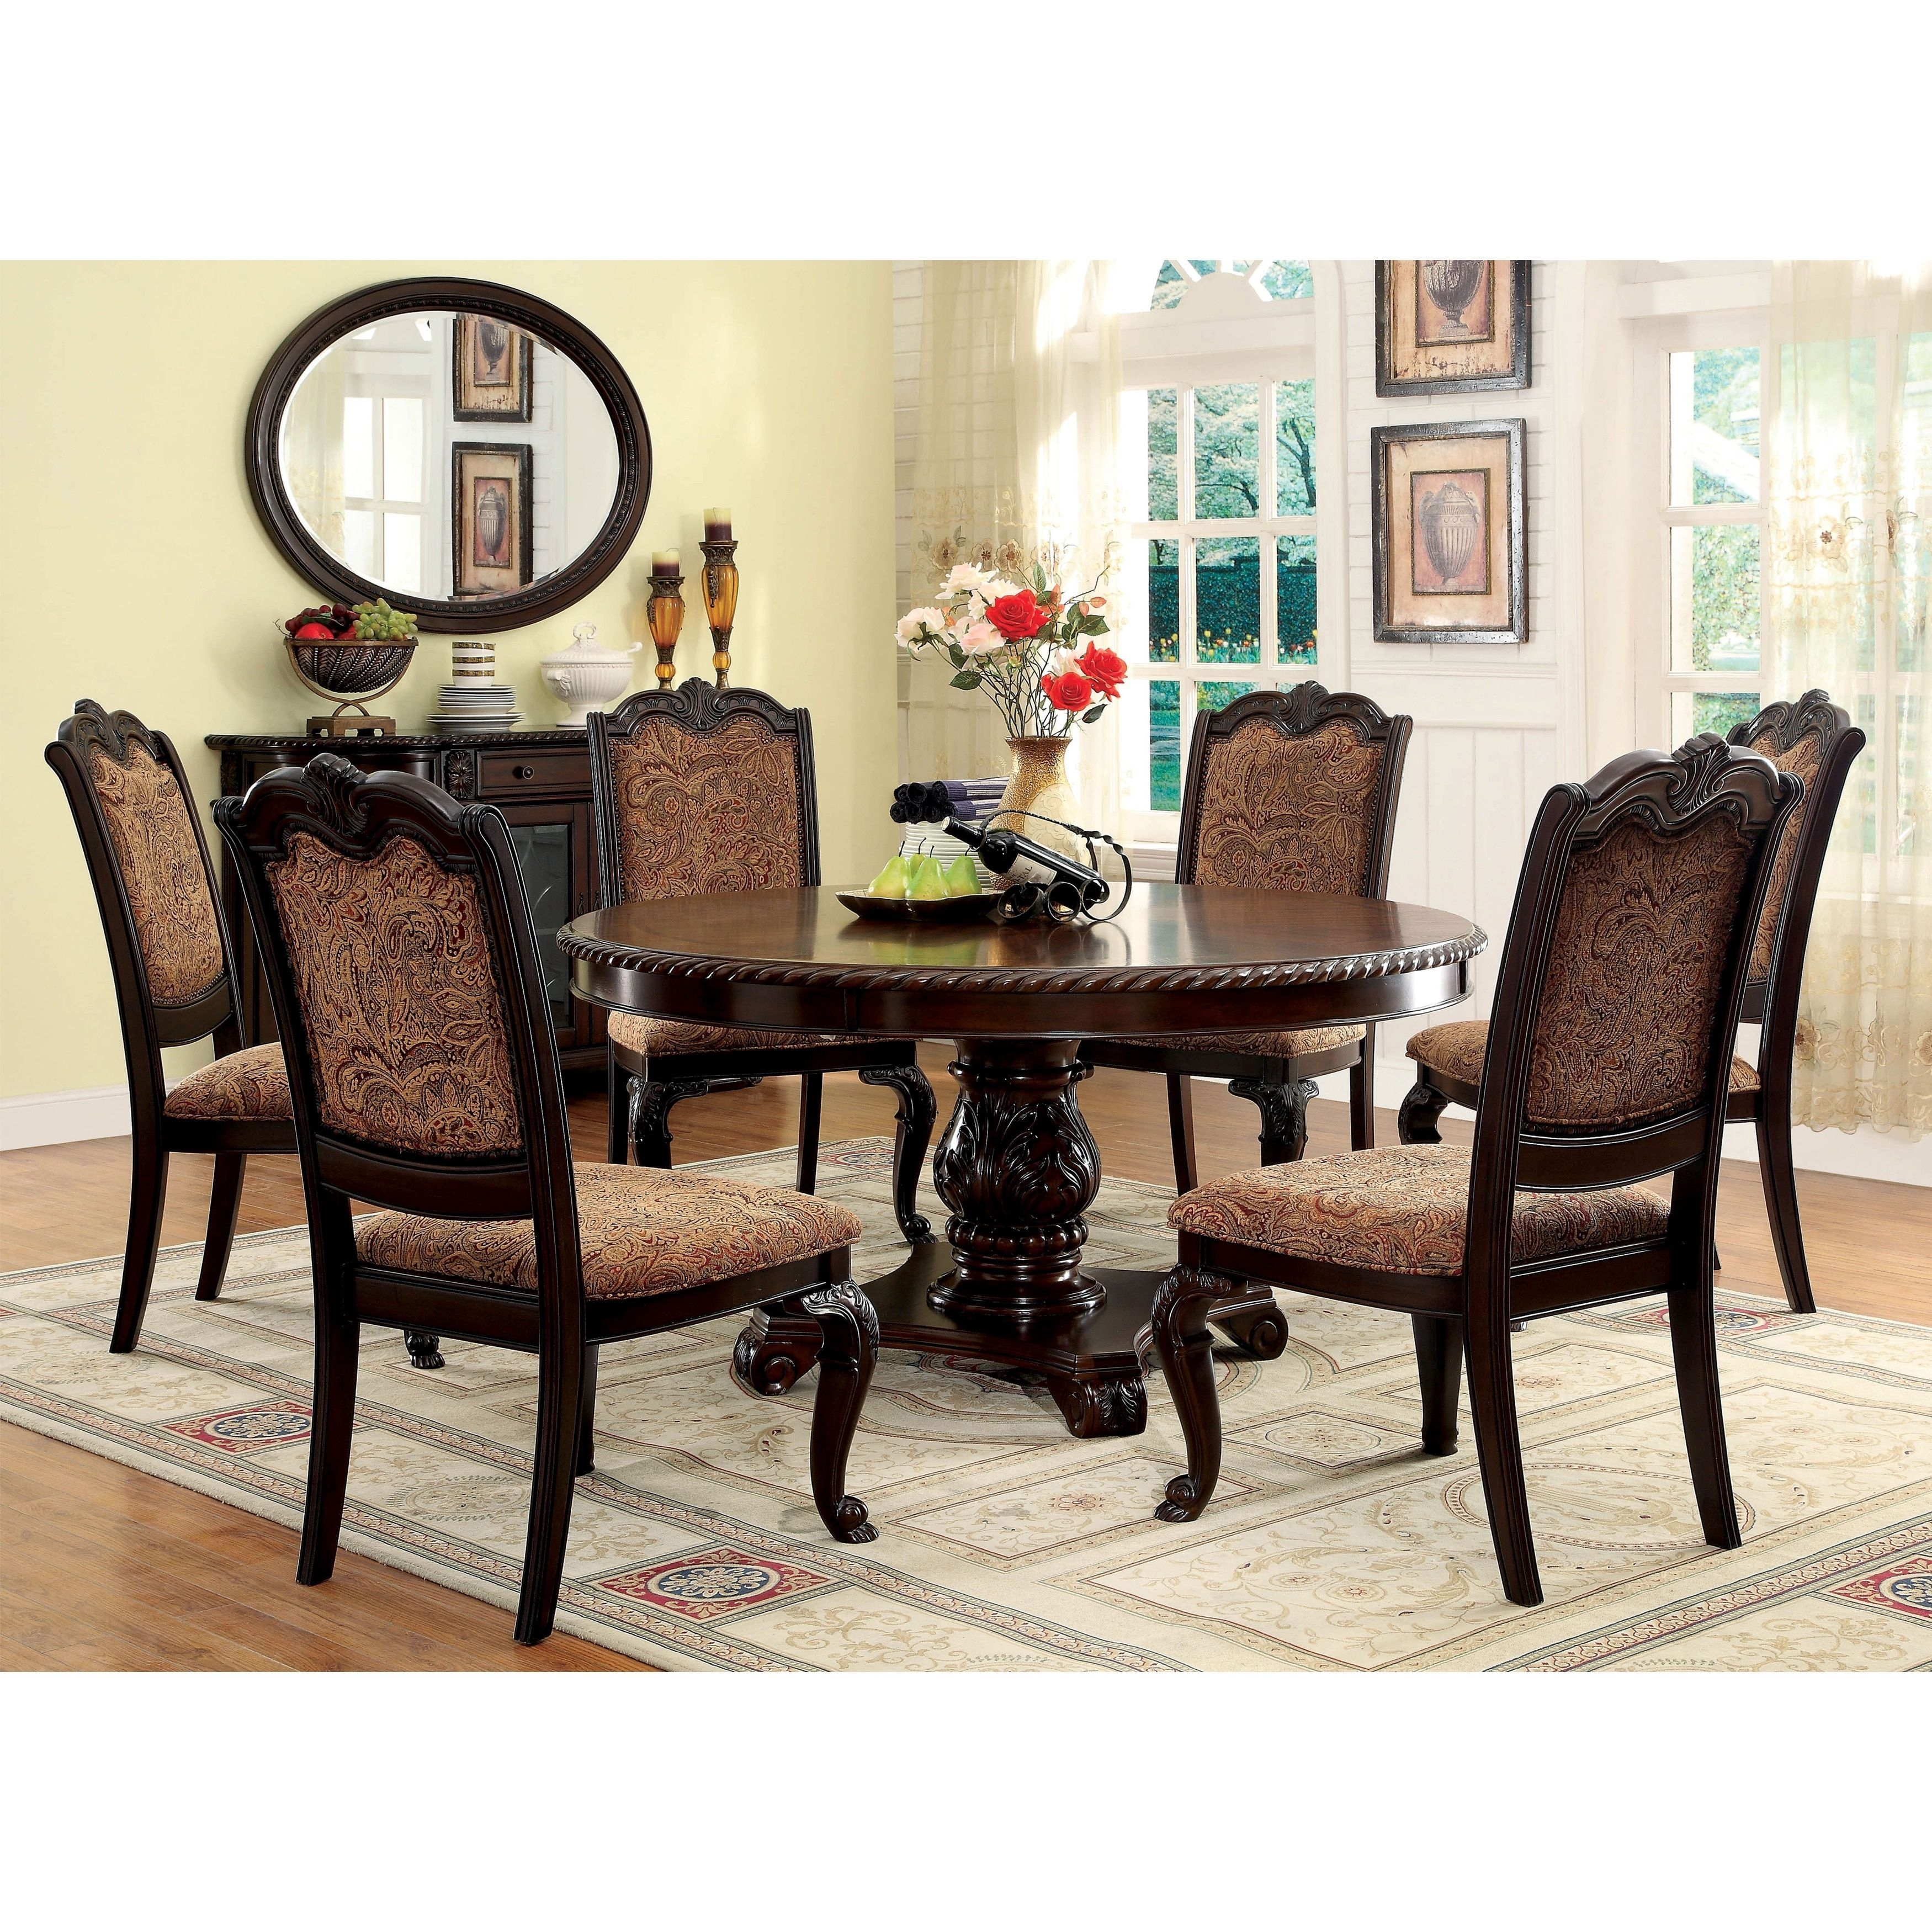 Furniture Of America Oskarre Iii Brown Cherry (Red) 7 Piece Formal With Newest Valencia 72 Inch 6 Piece Dining Sets (Image 6 of 20)